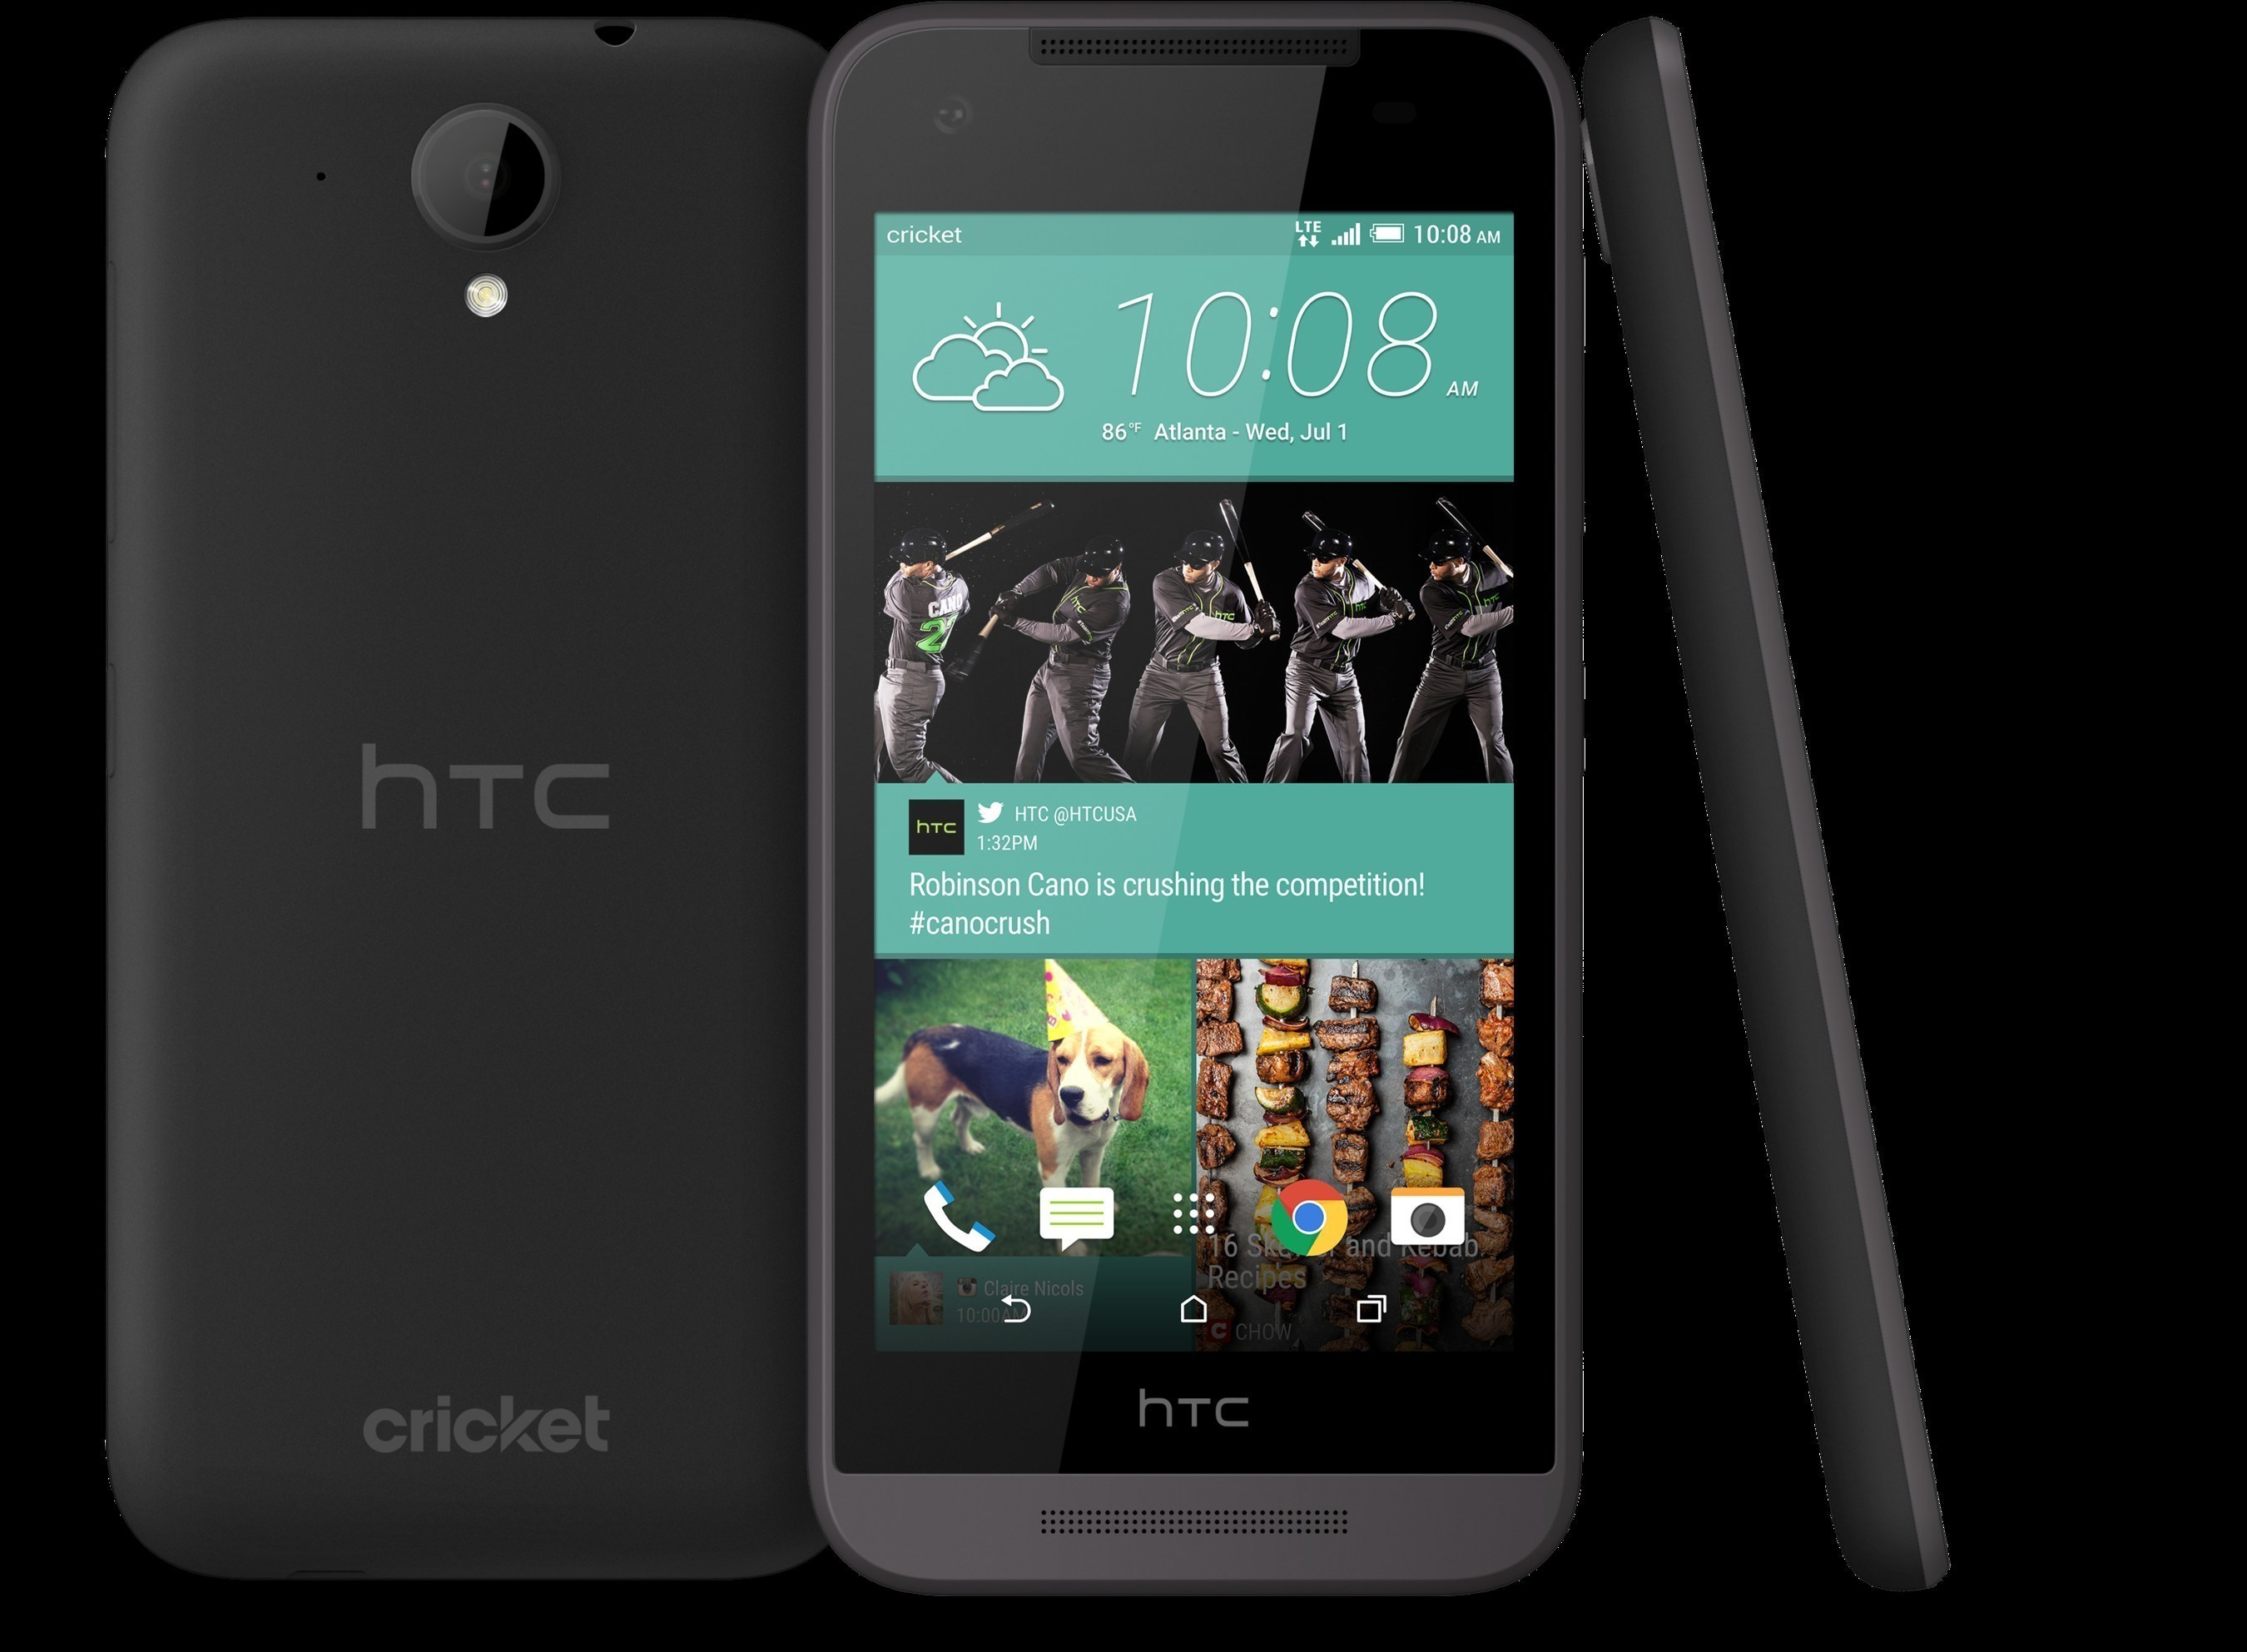 The HTC Desire 520 is one of the new HTC Desire smartphones designed to make premium features affordable and accessible to all.